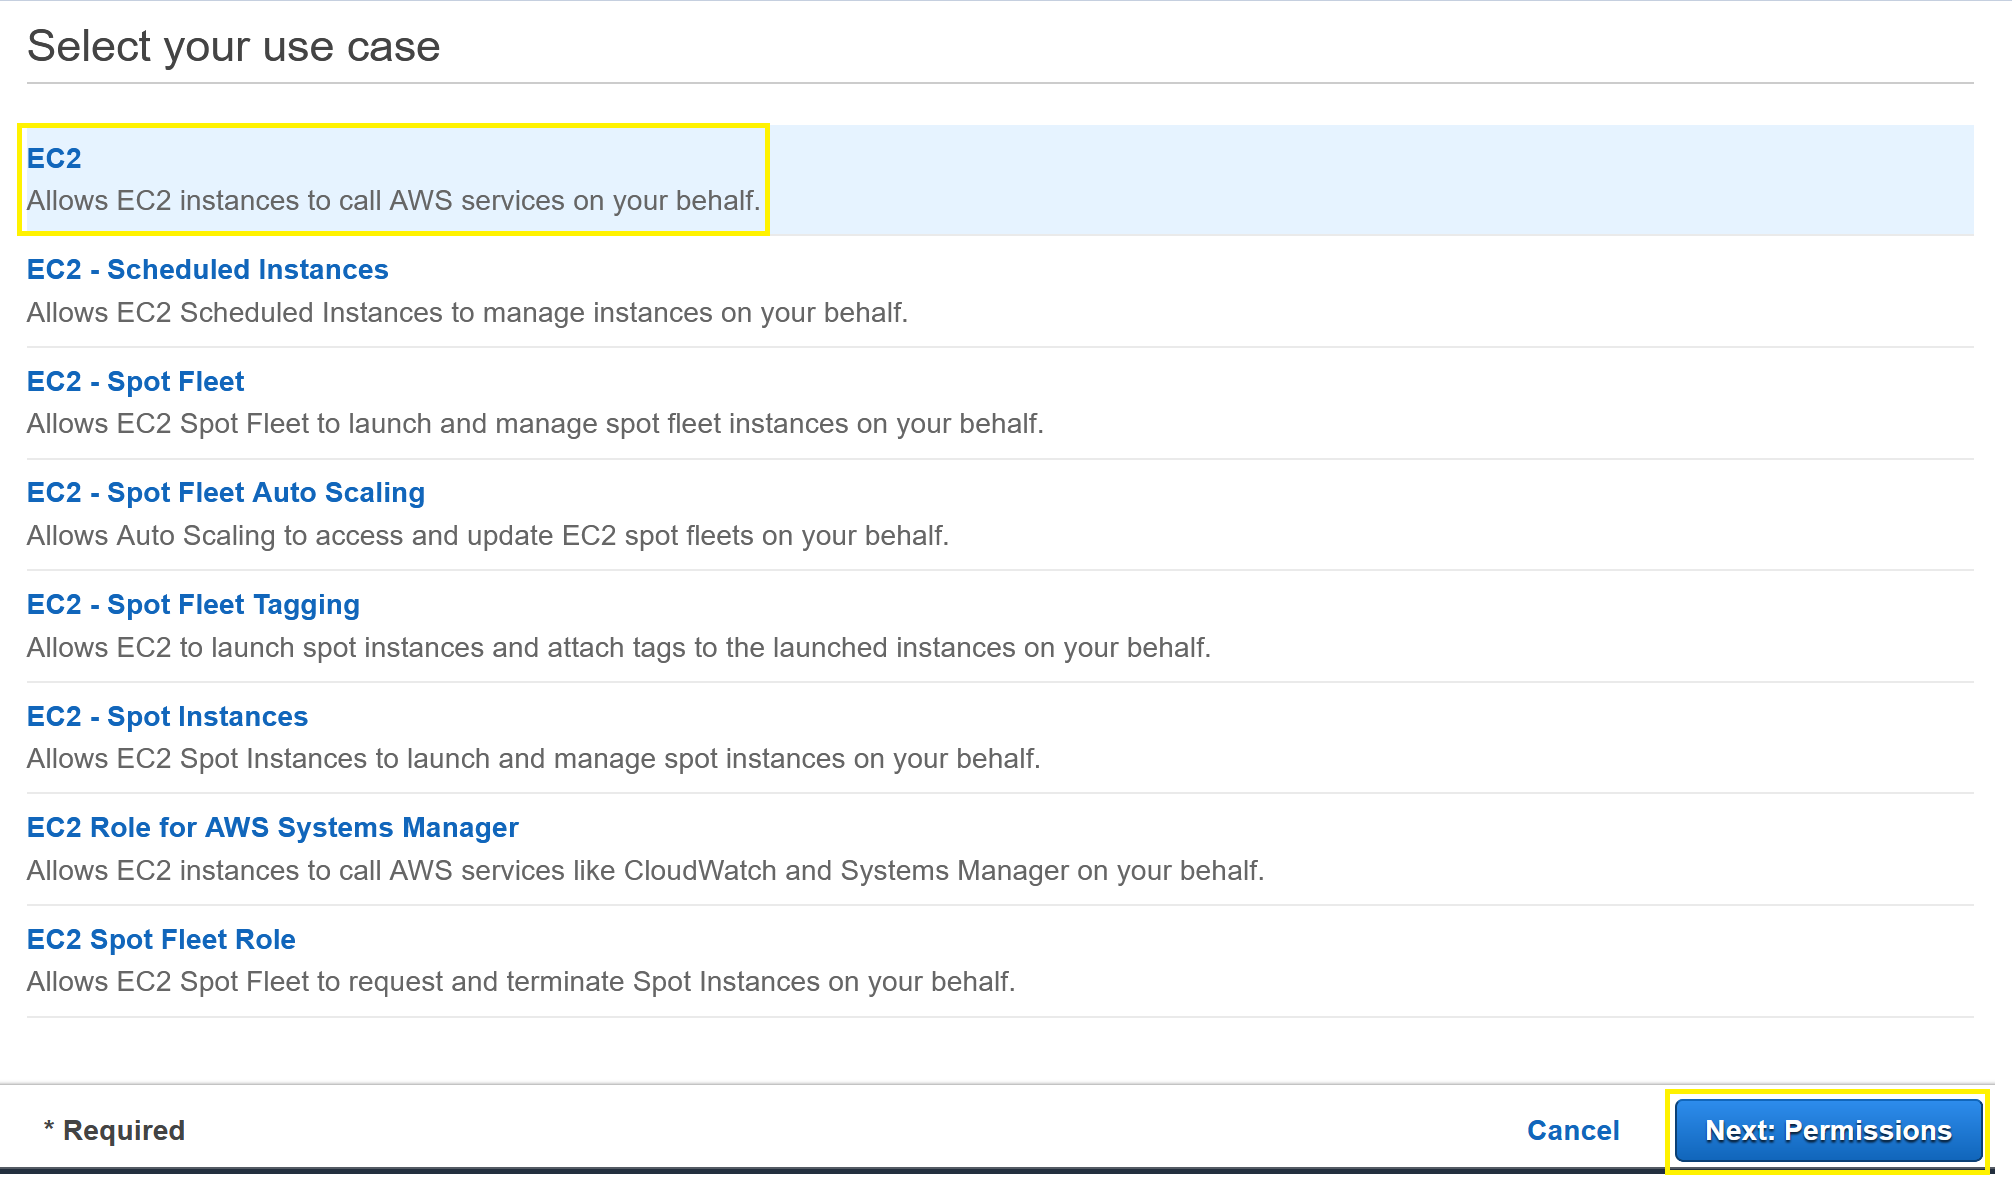 Create Role menu showing EC2 and Next: Permissions selections.